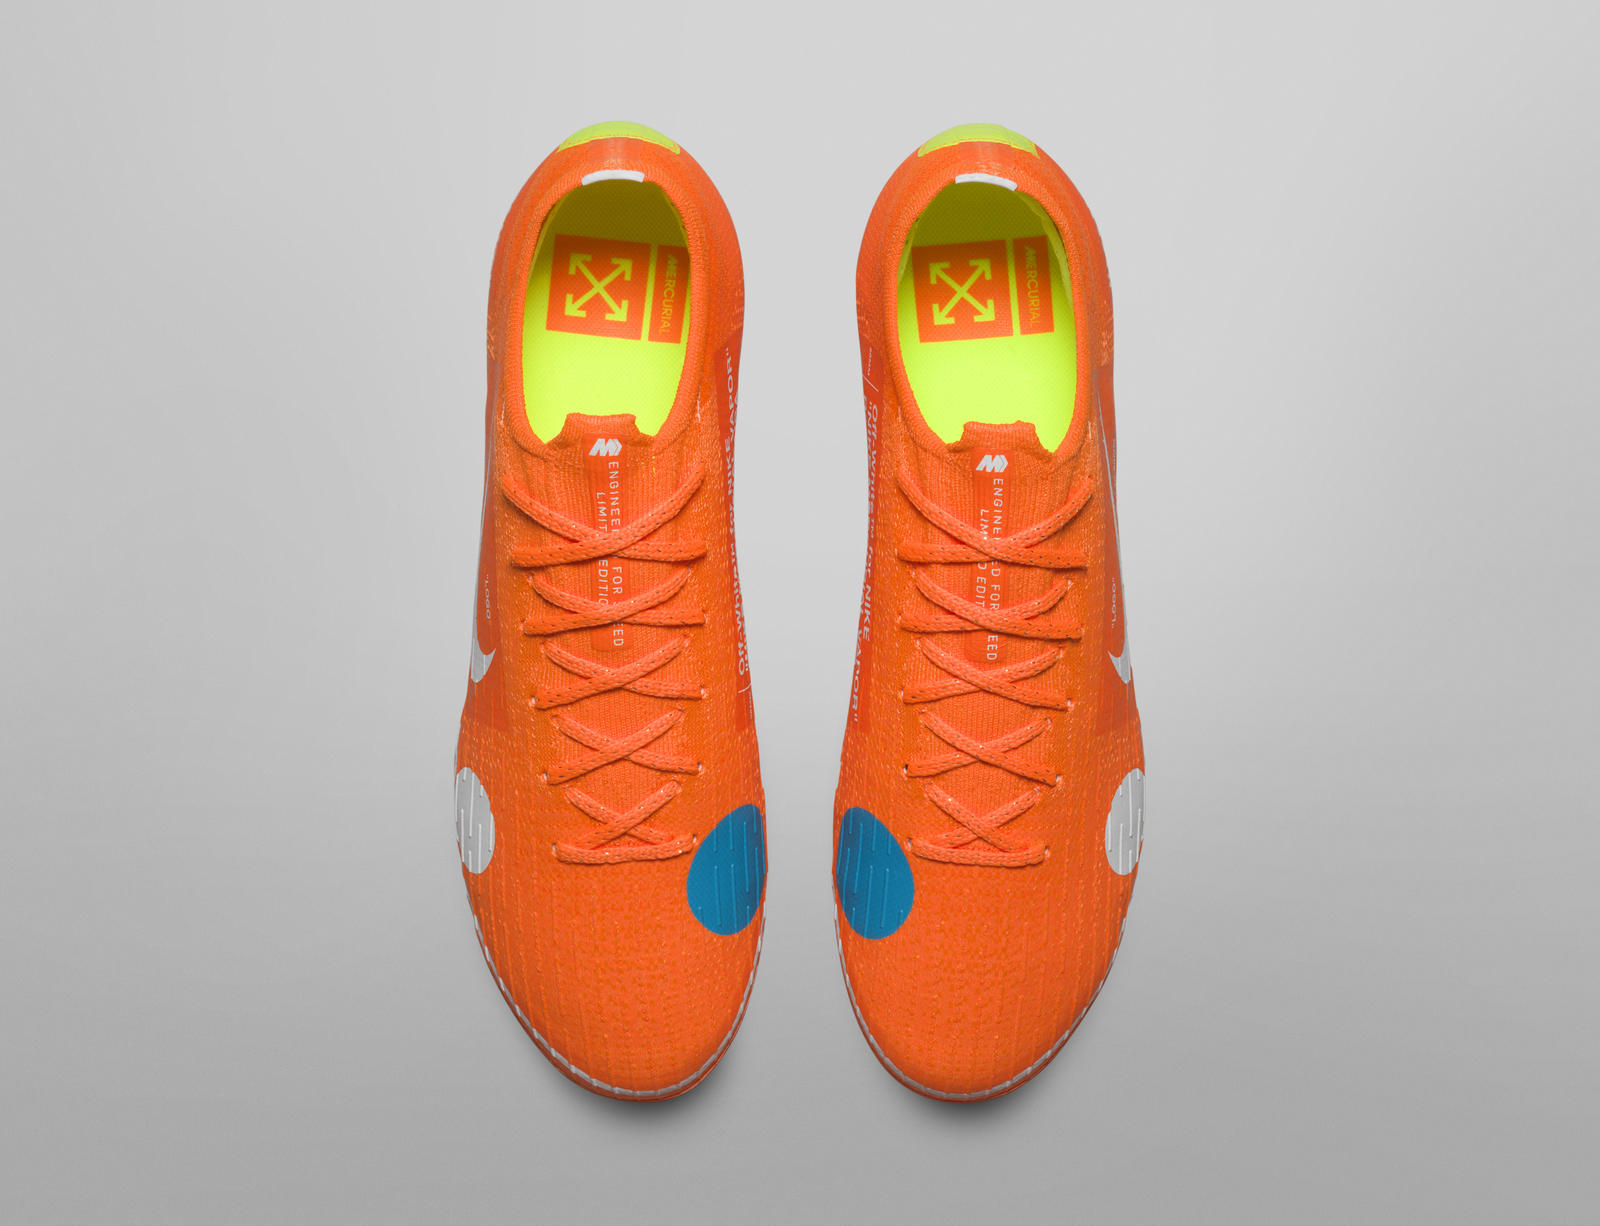 0cb0eb9b4 Virgil Abloh Reveals the Design Intent Behind his Mercurial Vapor ...